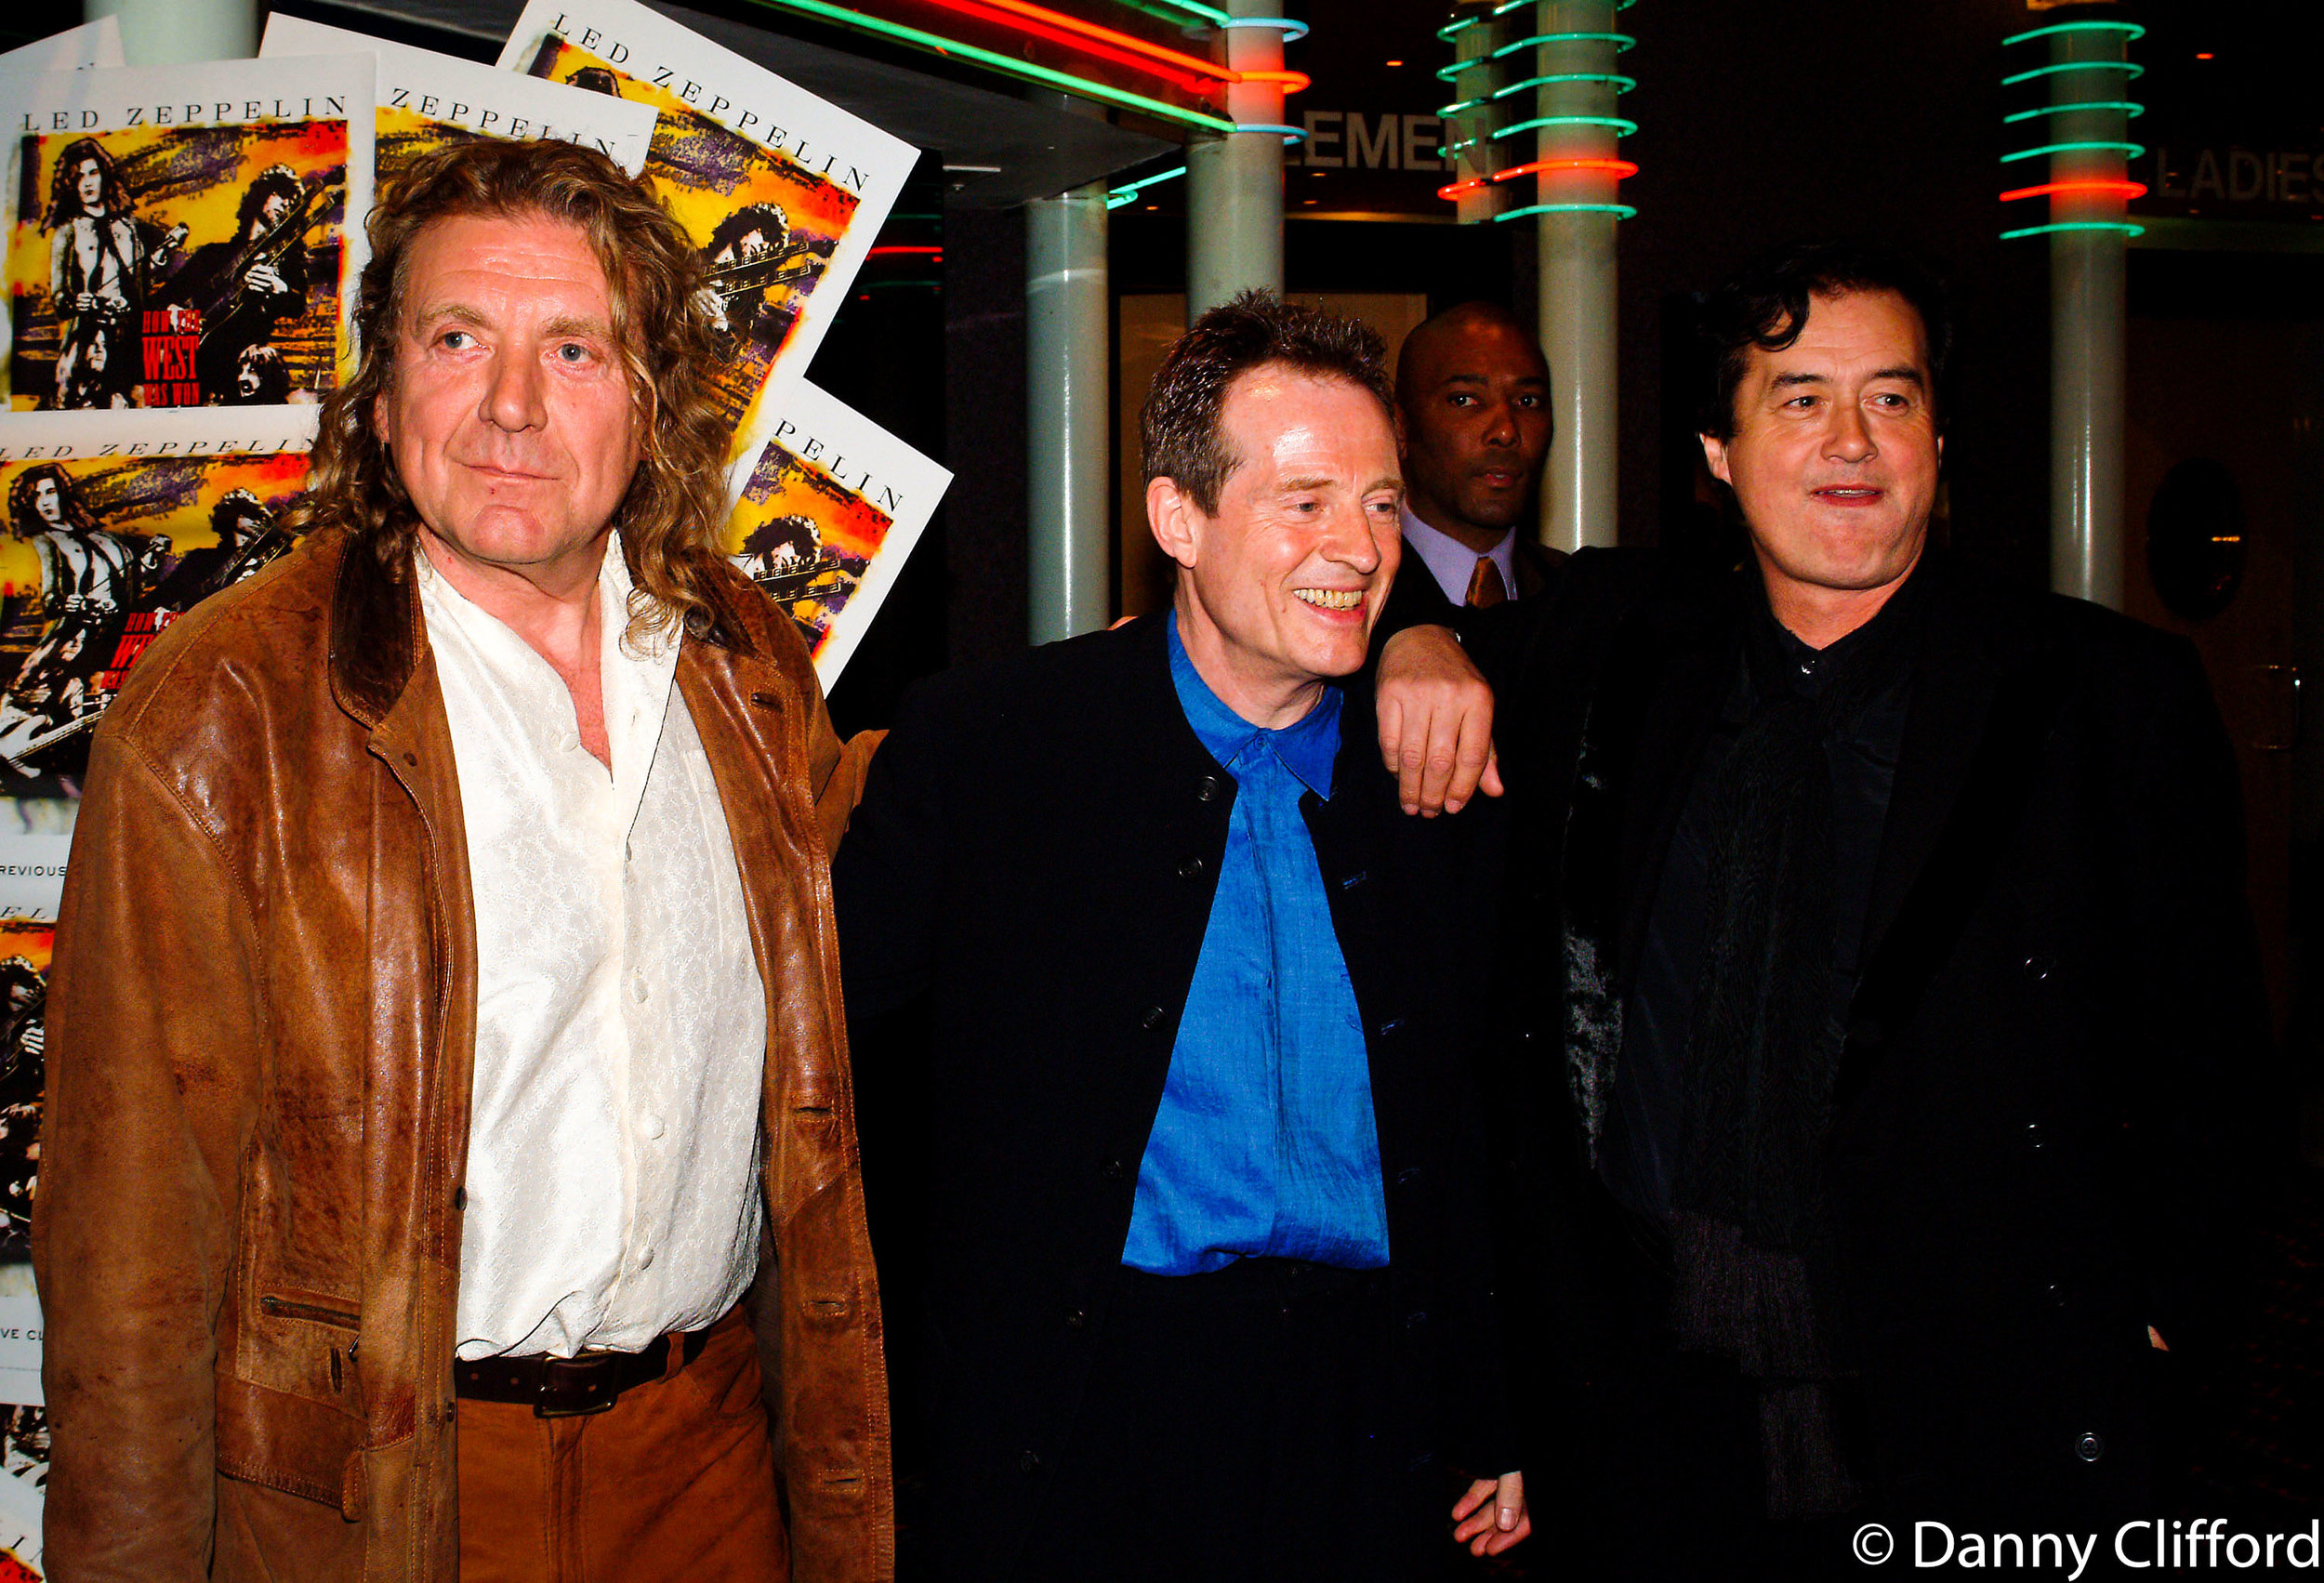 How the West Was won film premier. London. Robert Plant, John Paul Jones and Jimmy Page